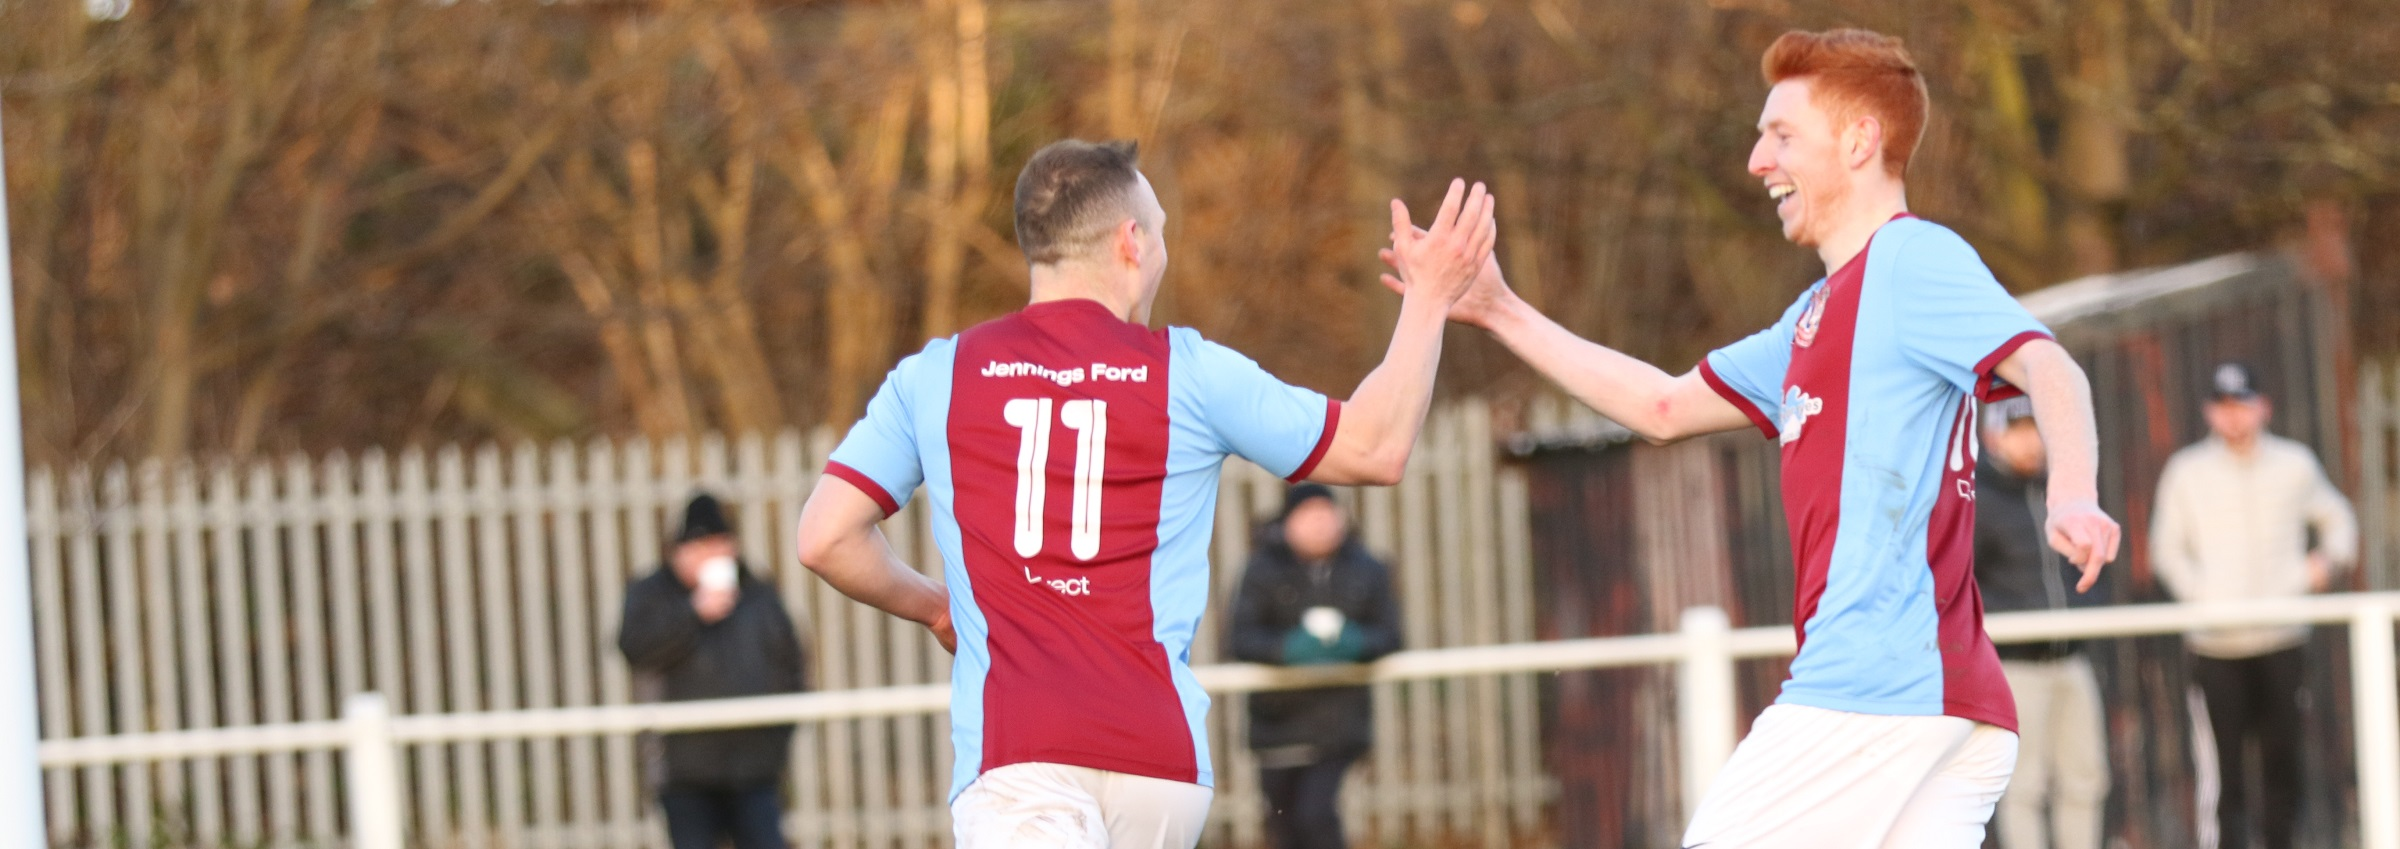 South Shields 4-1 Penrith: Mariners seal Boxing Day win